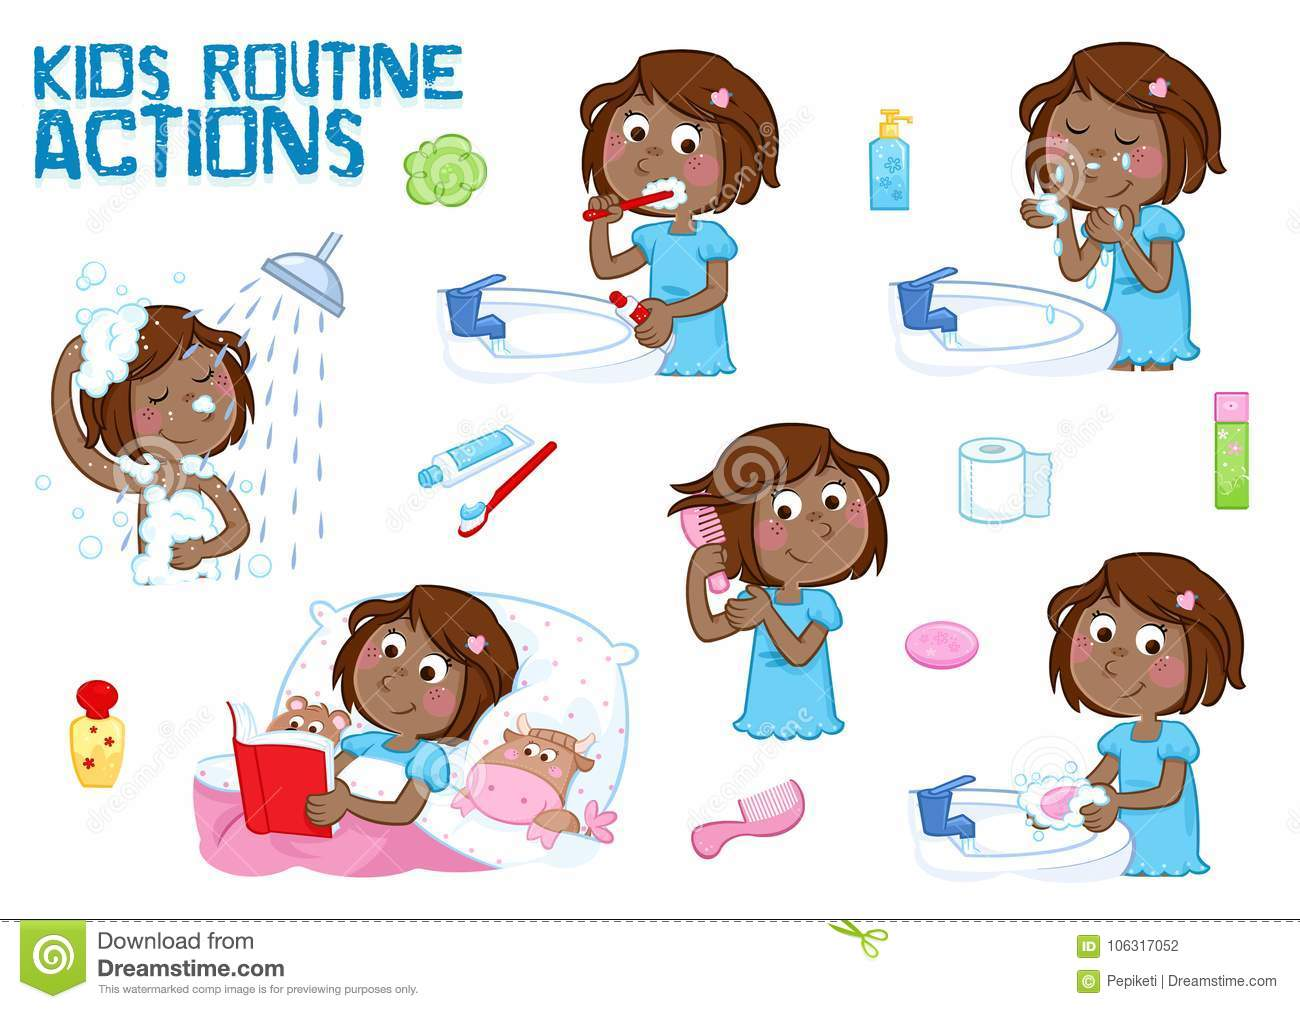 Lovely little black girl and her daily routine actions - white background